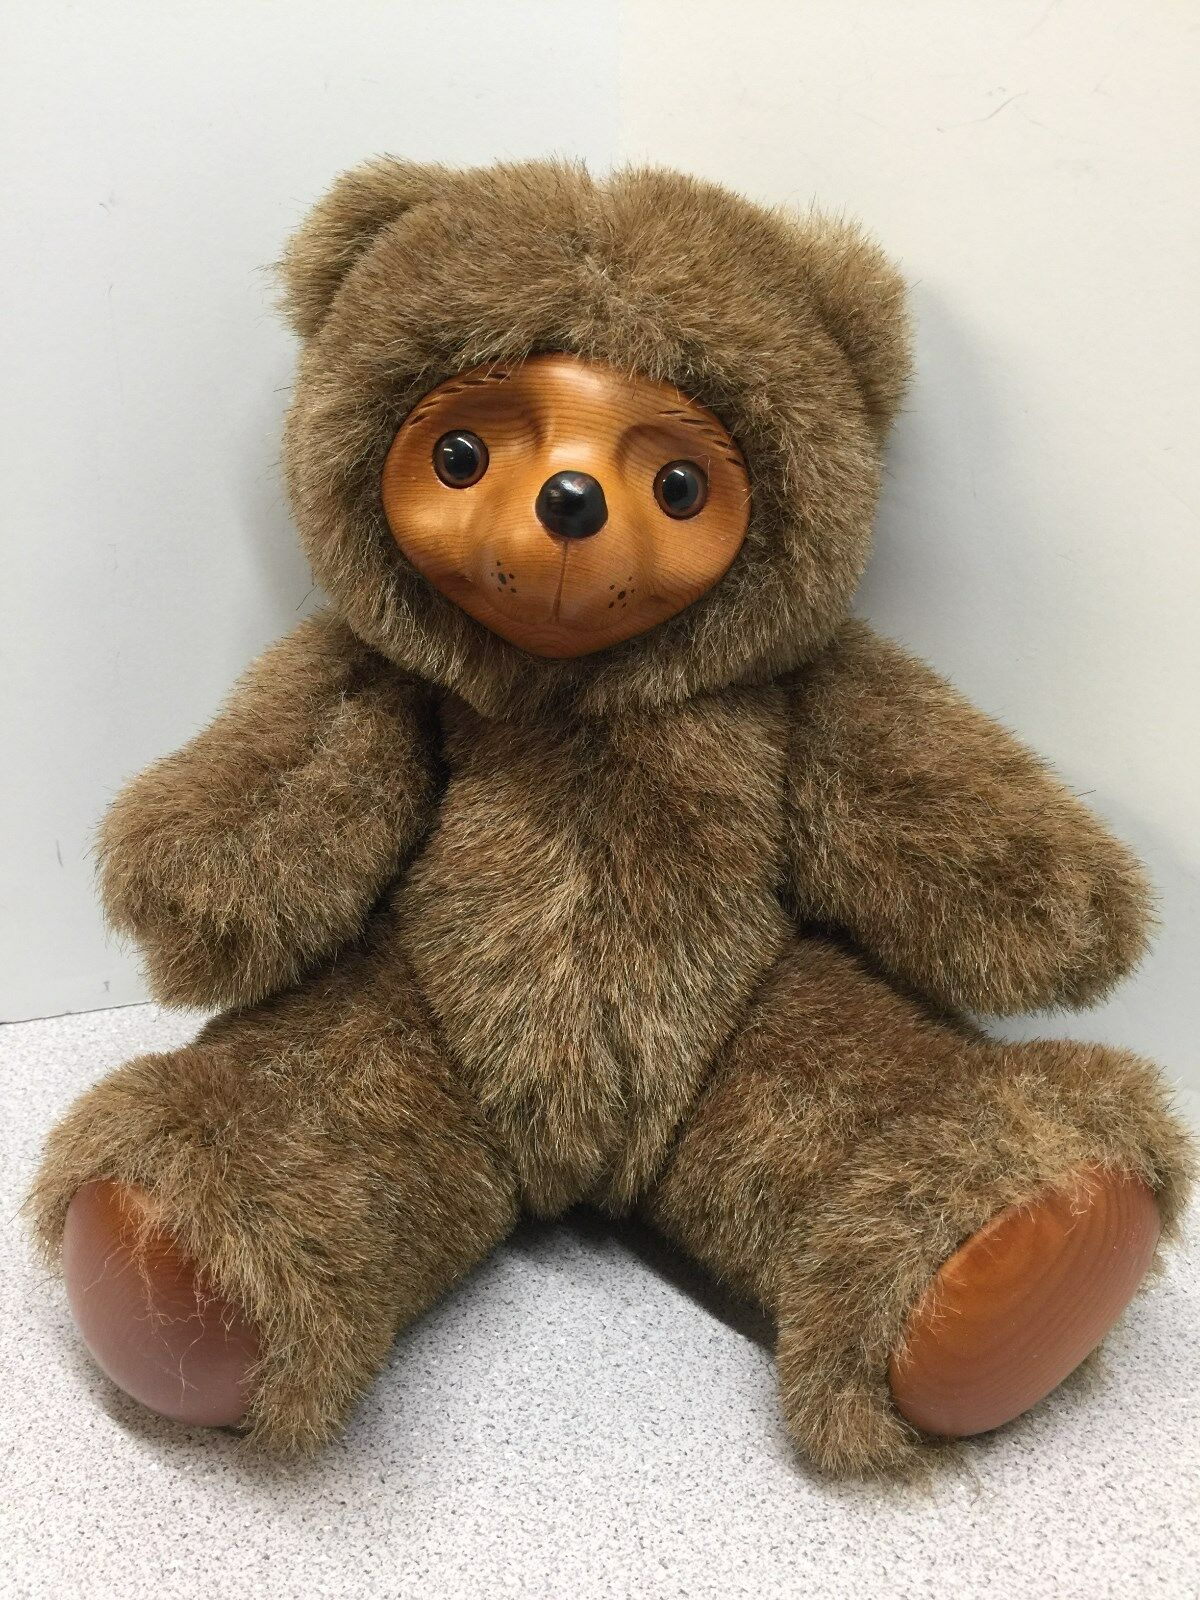 Precious Raikes Bear with Wooden Face and Foot Pads - 12  Robert Raikes Original